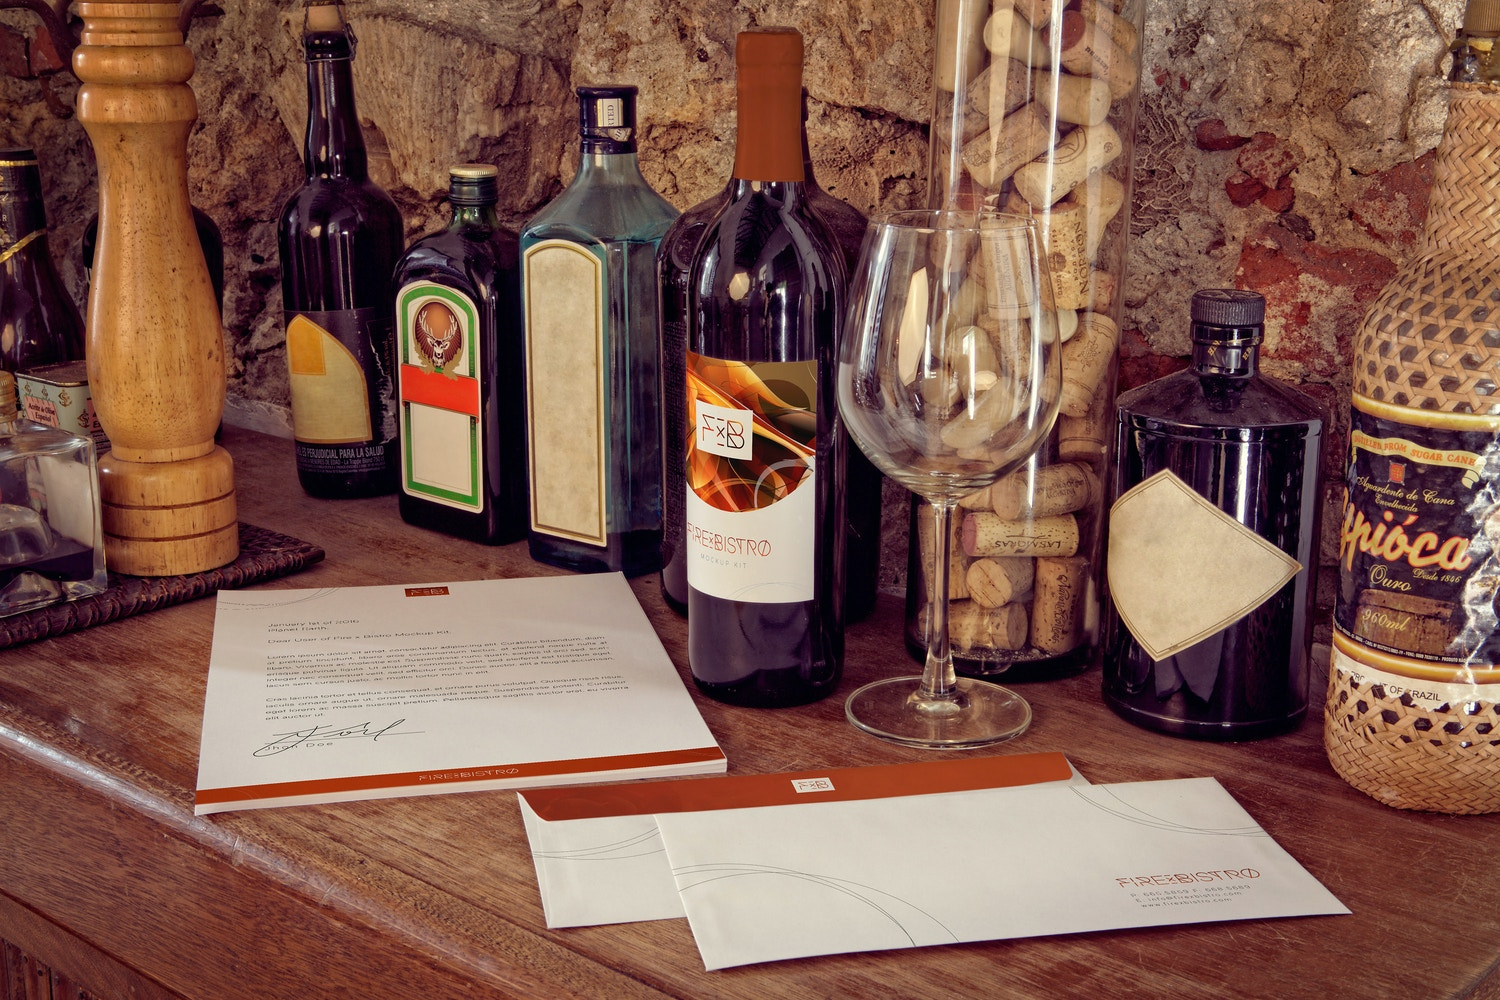 Letterhead, Wine Bottle, Envelope Mockup por 4to Pixel en Original Mockups